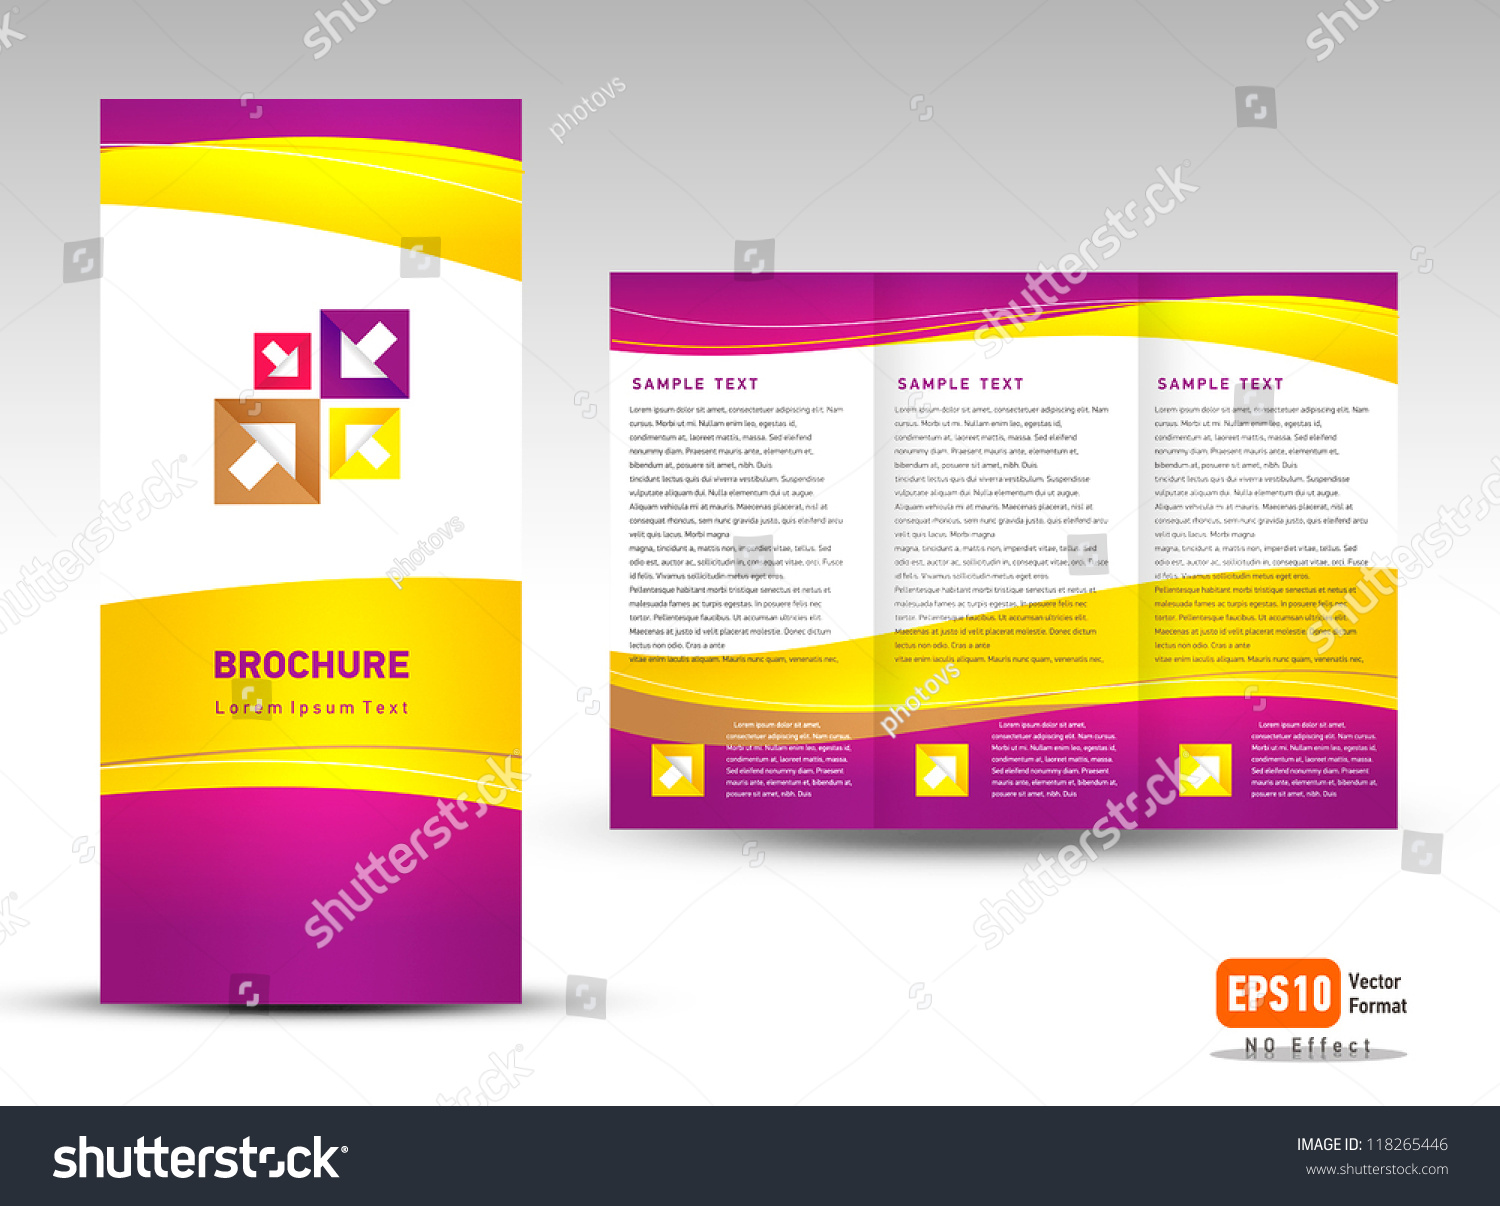 Stock layouts trifold brochures rapidshare for Background for brochure design